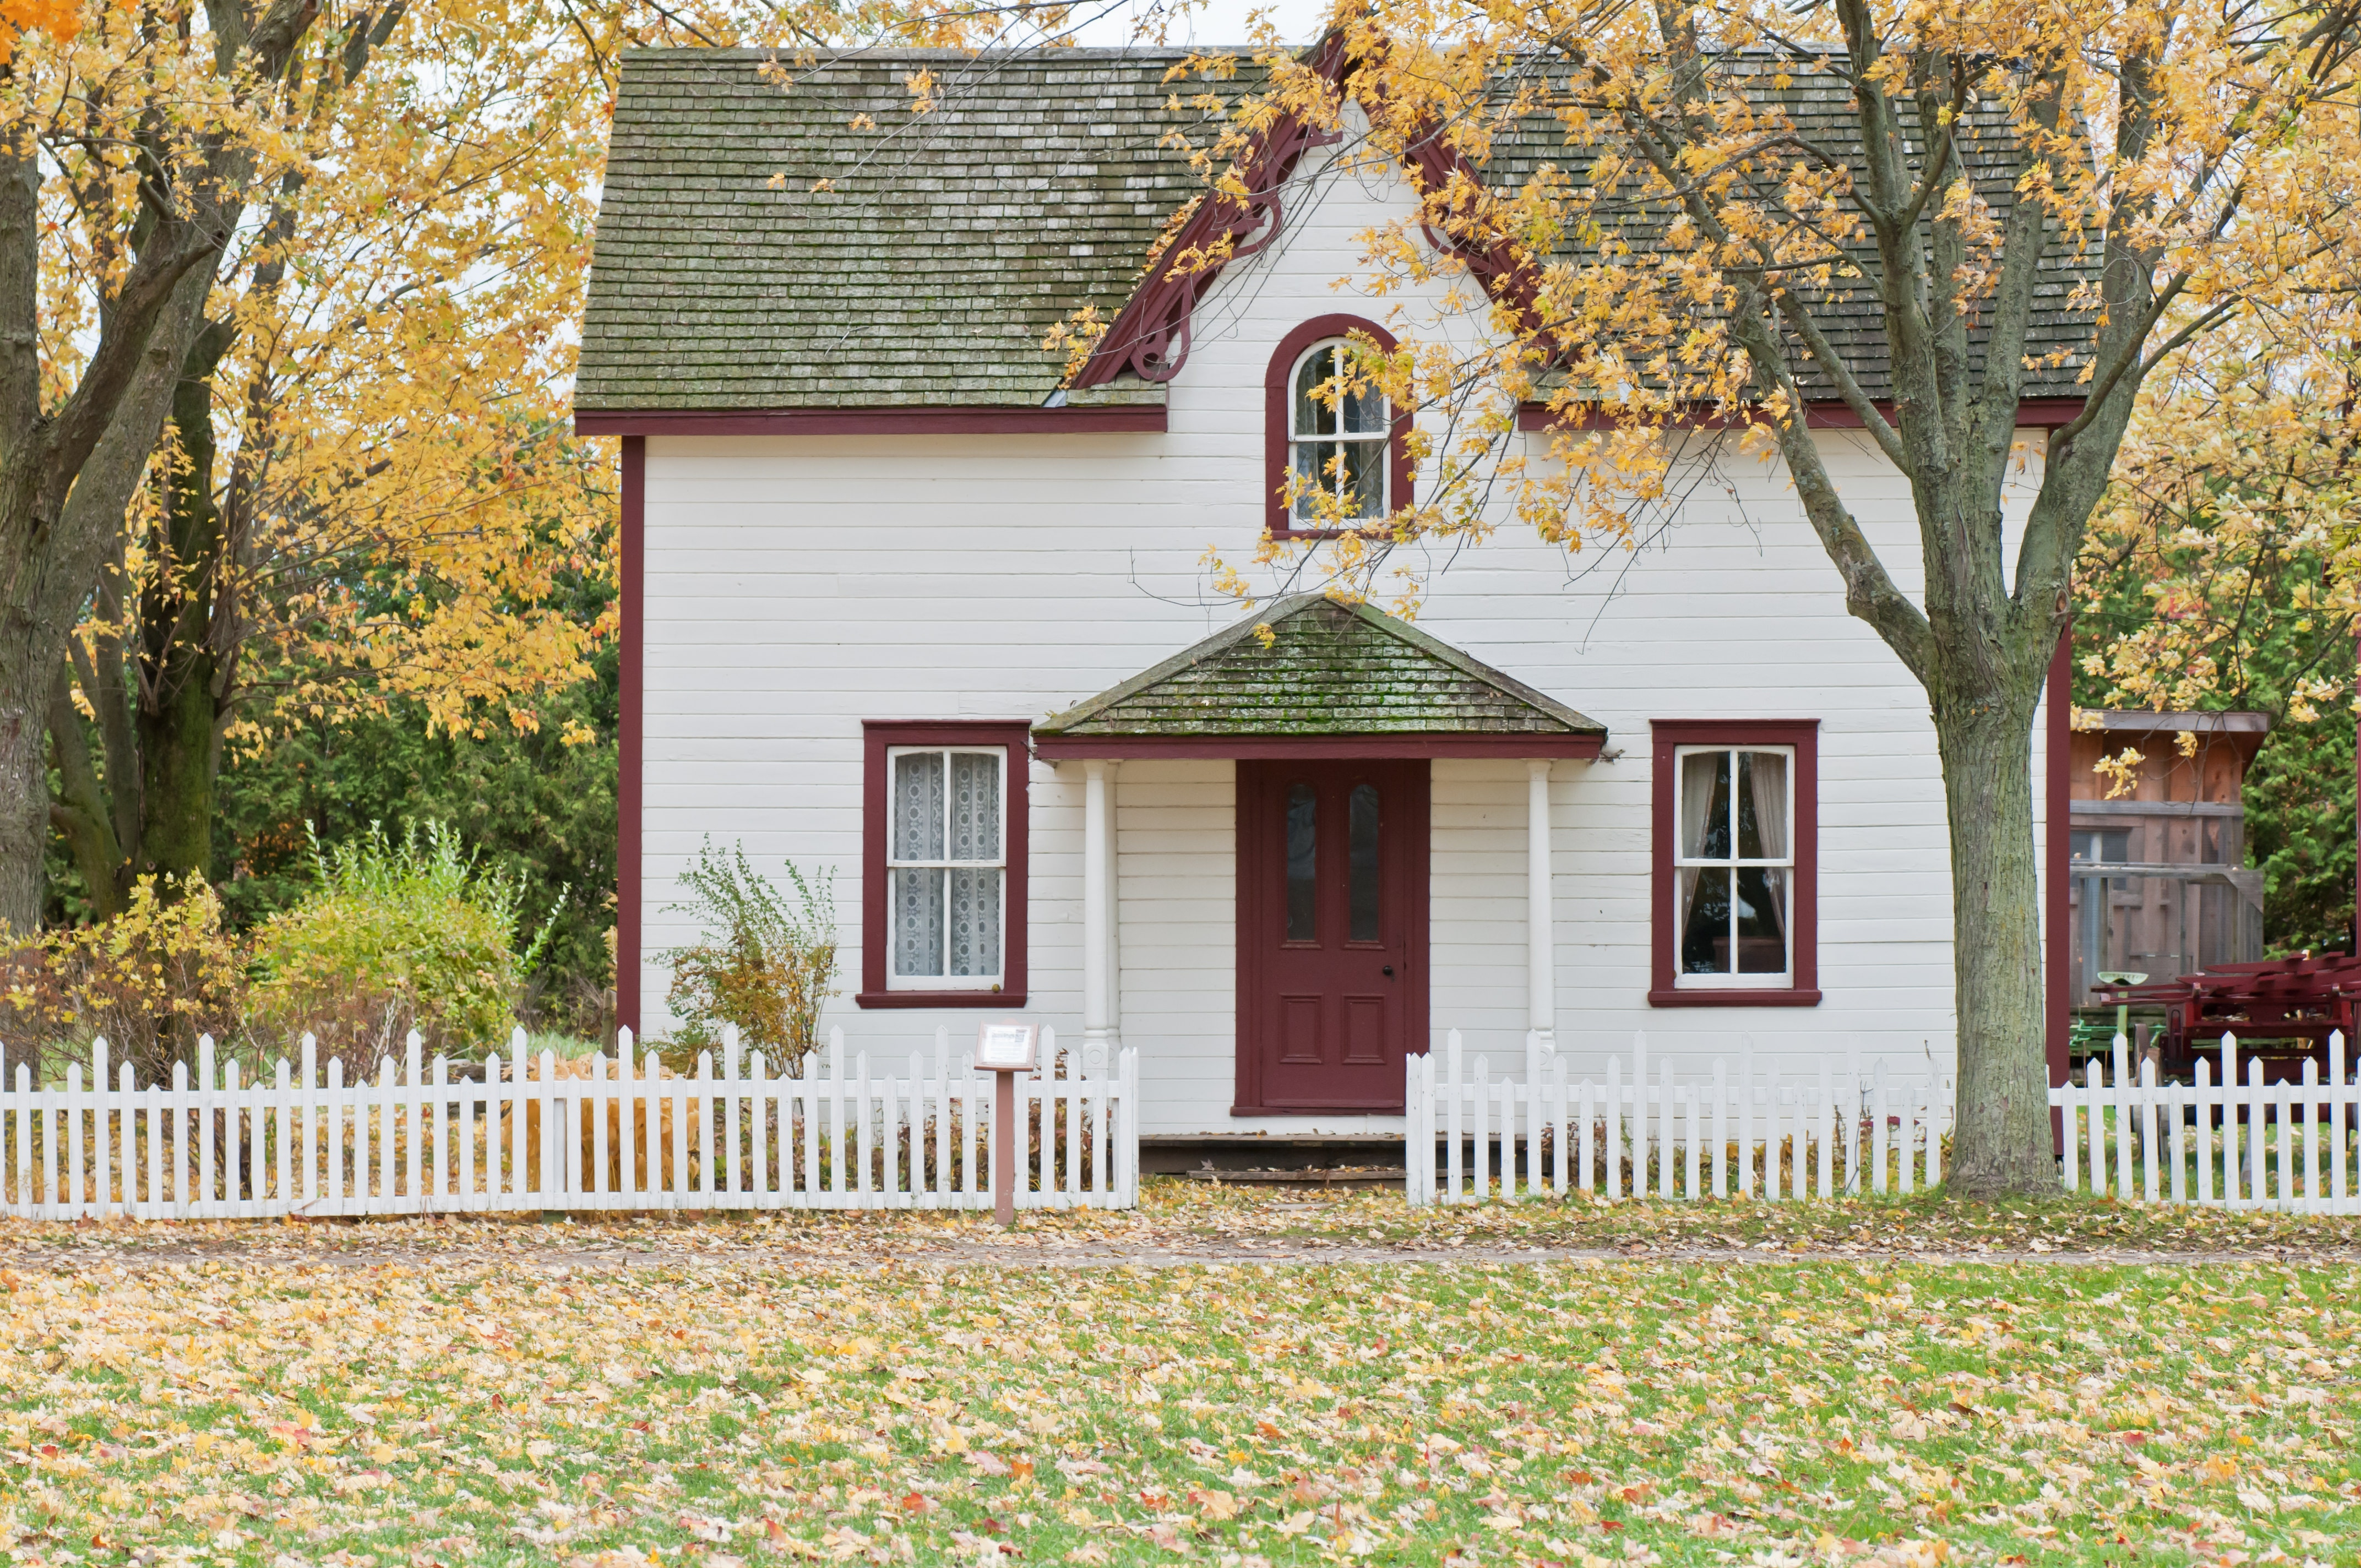 Let's Talk Fall Lawn Care Services - Featured Image